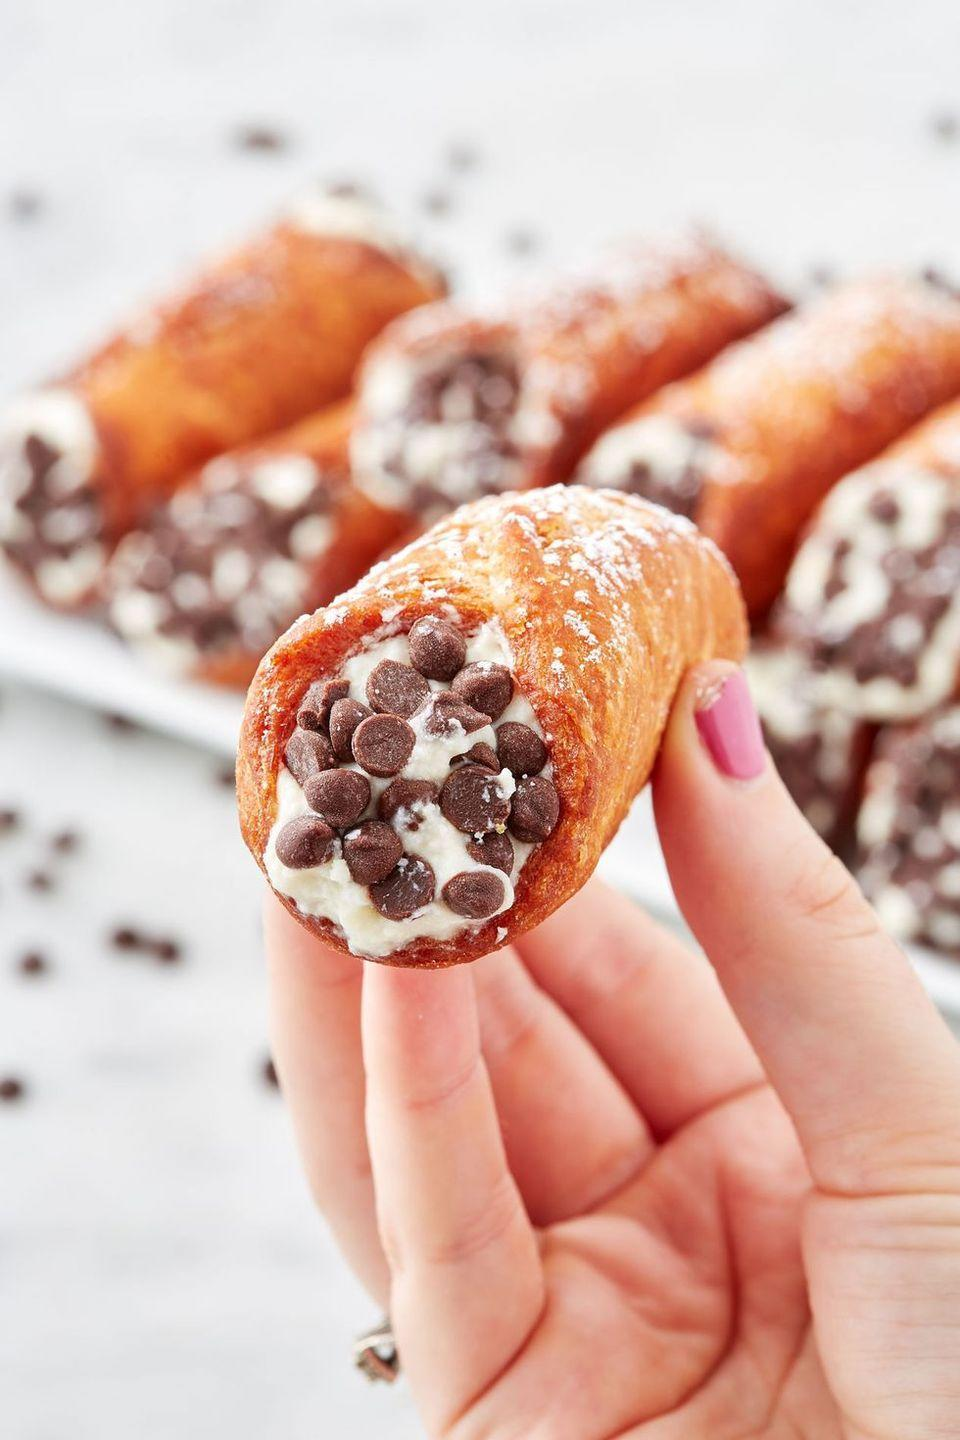 "<p>Nothing says ""I love you"" like a pastry stuffed with sweet ricotta filling. </p><p>Get the recipe from <a href=""https://www.delish.com/cooking/recipe-ideas/a28626292/homemade-classic-cannoli-recipe/"" rel=""nofollow noopener"" target=""_blank"" data-ylk=""slk:Delish"" class=""link rapid-noclick-resp"">Delish</a>.</p>"